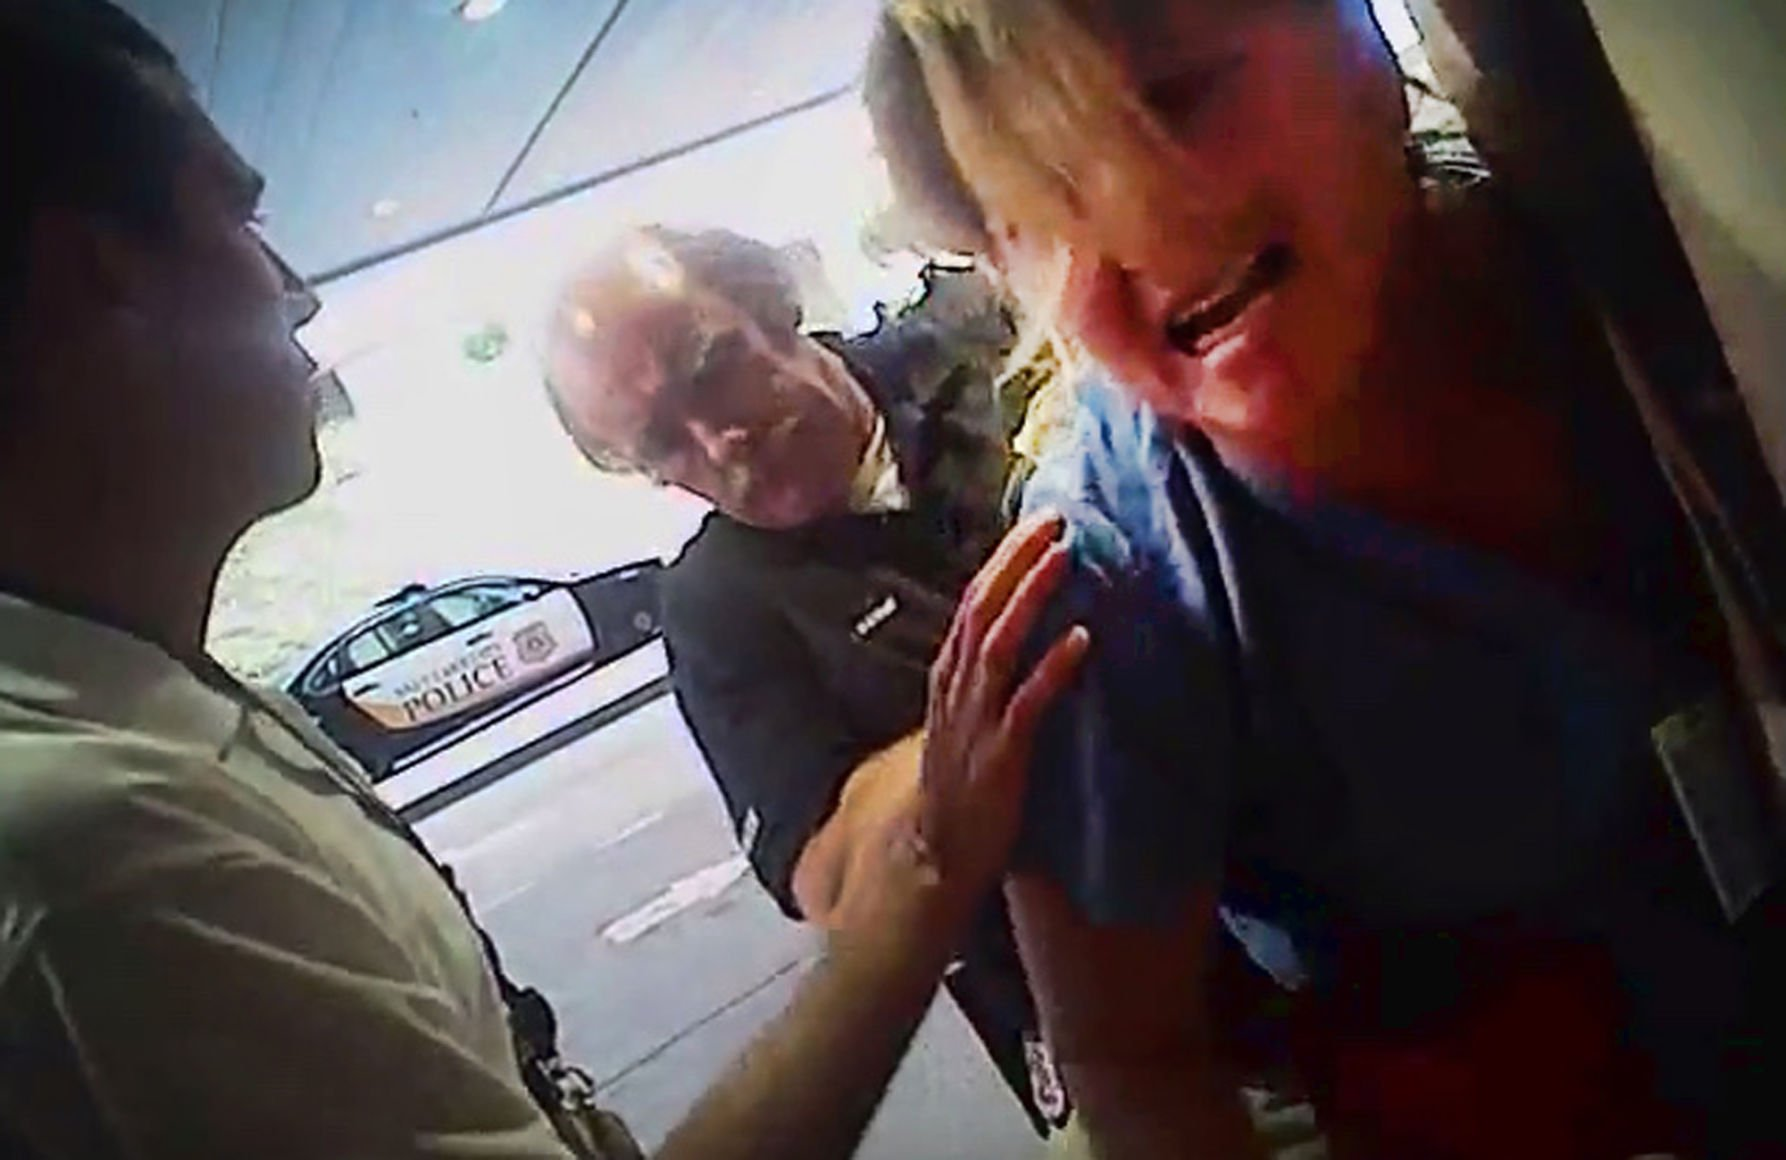 Utah police officer who arrested nurse fired from 2nd job